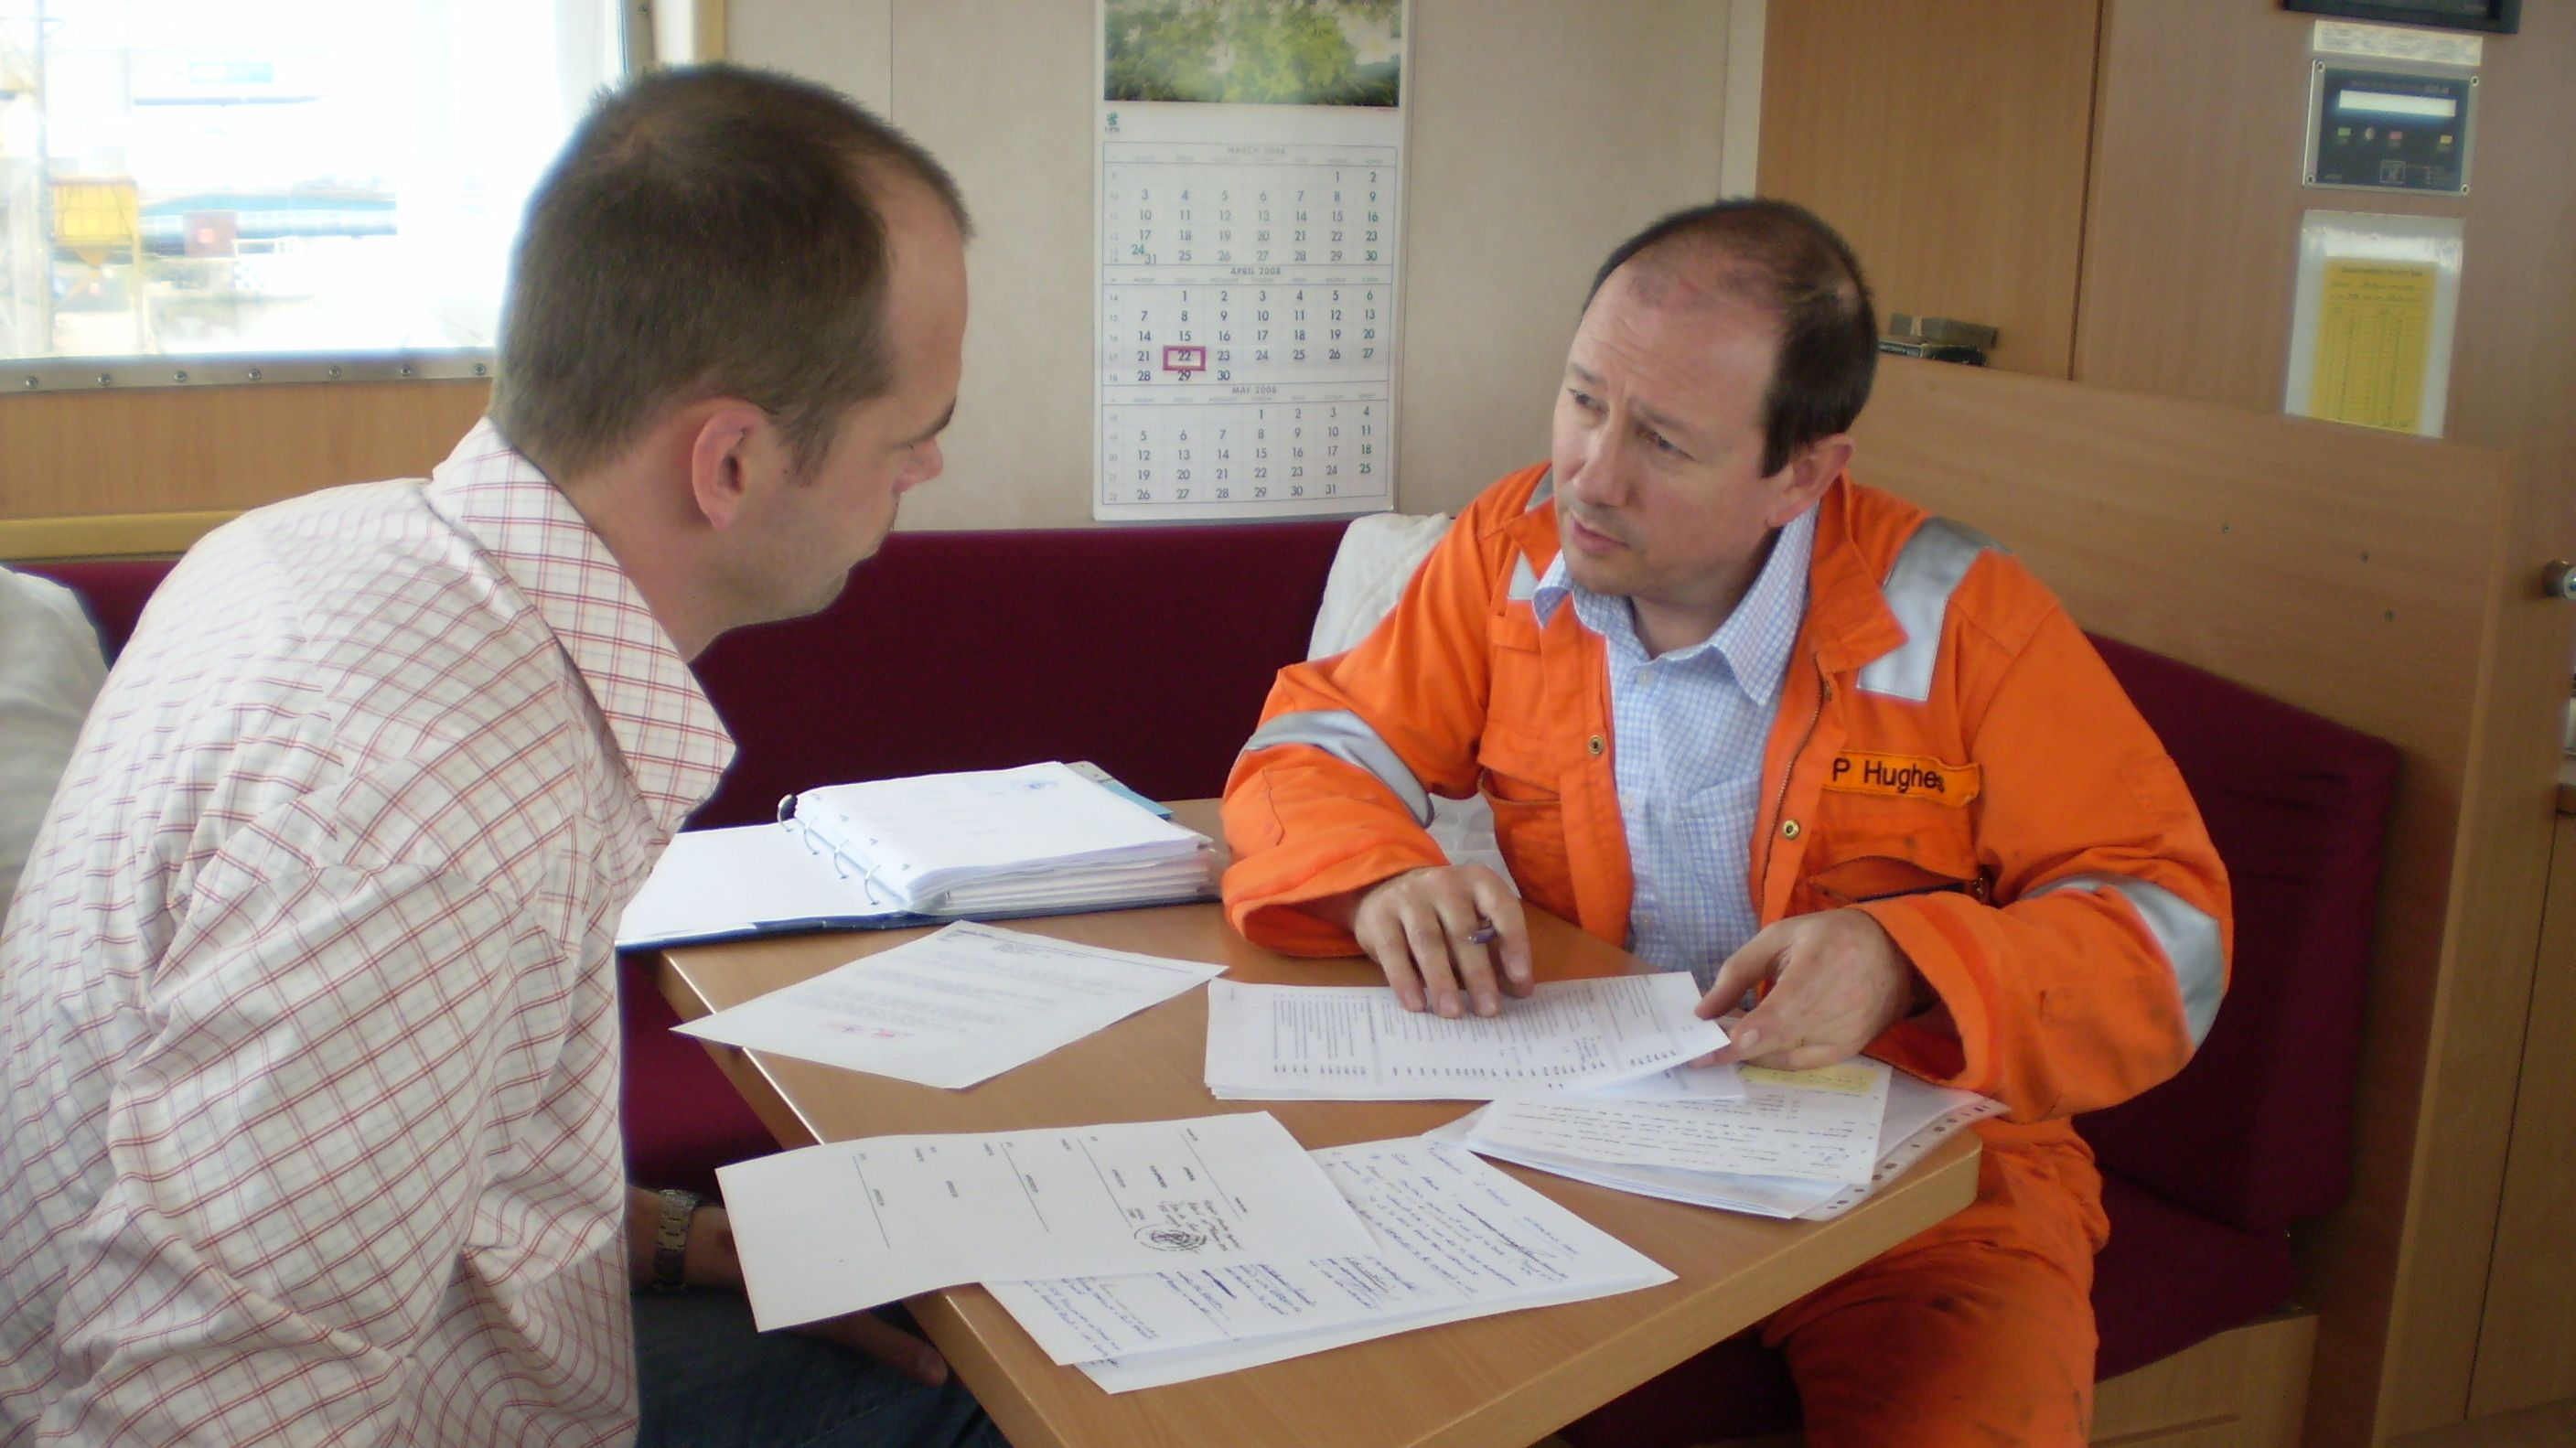 Insurance inspection company performs loss control